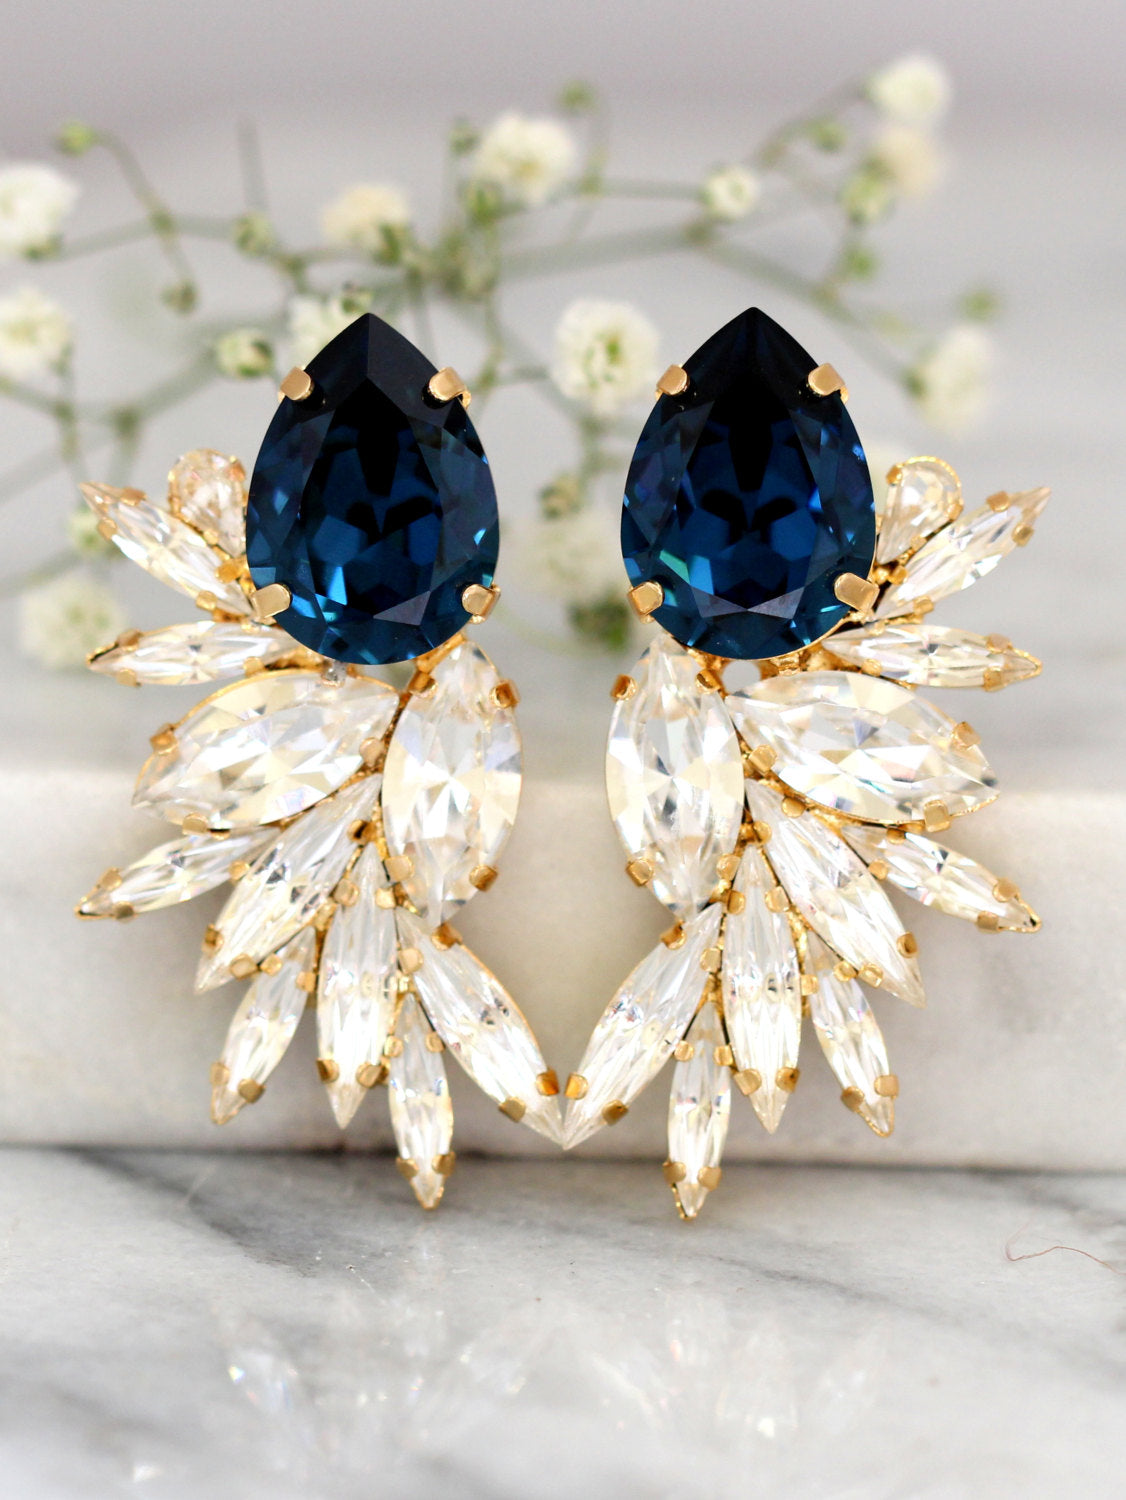 Kim Blue Navy Crystal Swarovski Cluster Earrings